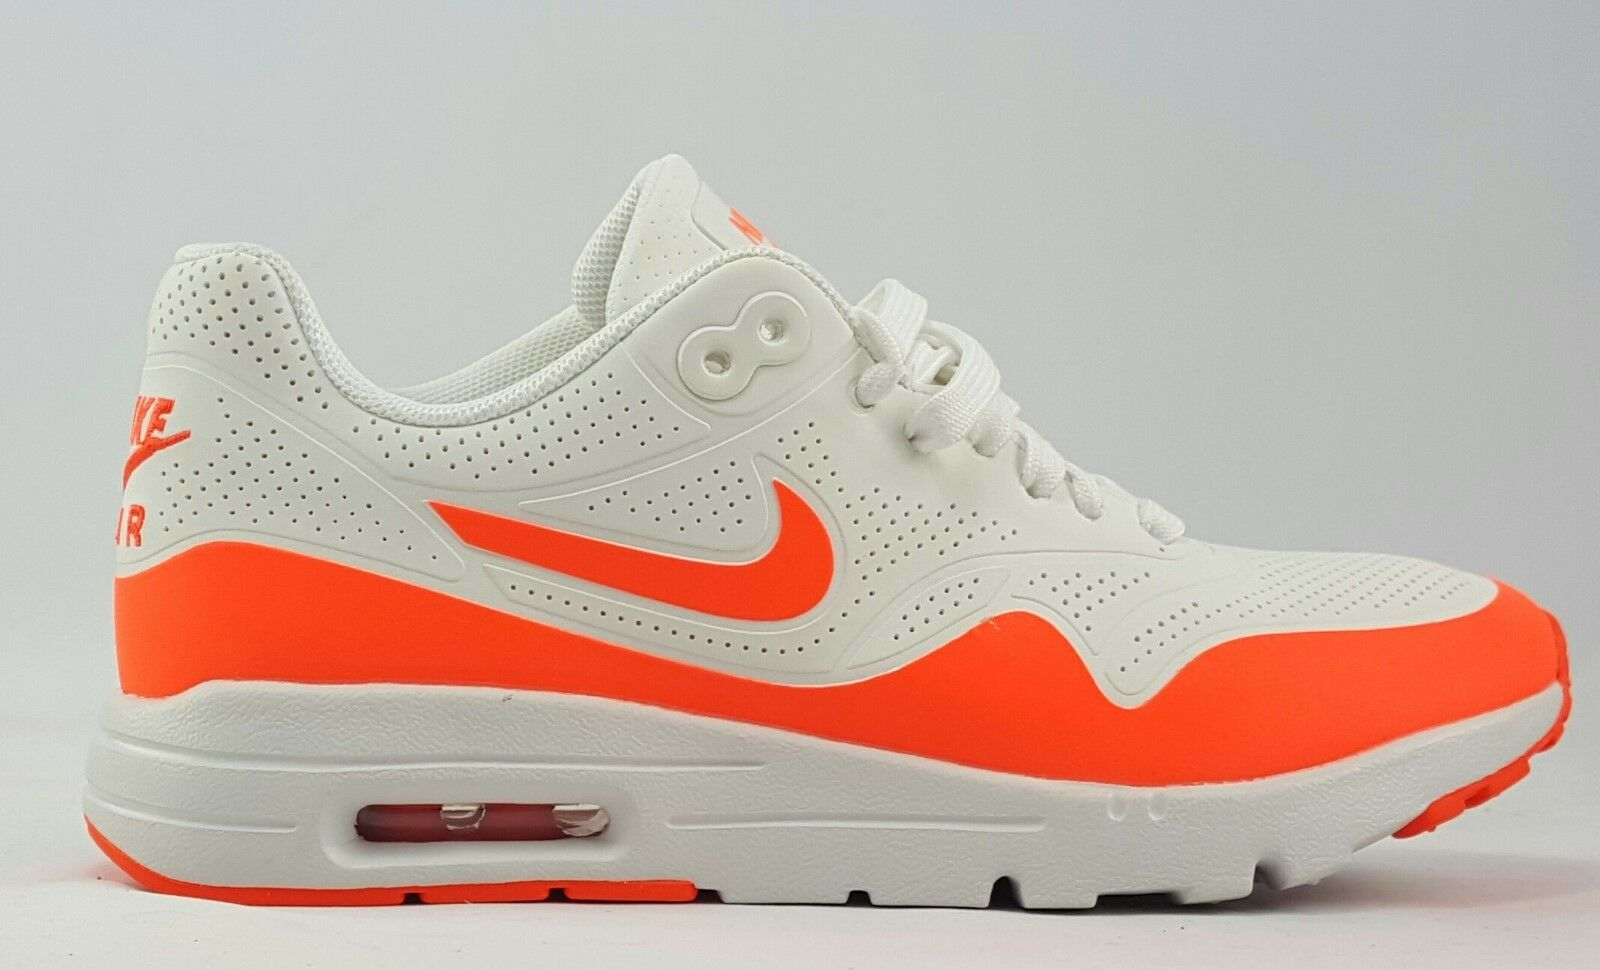 EXCLUSIVE WOMENS AIR MAX MAX MAX 1 ULTRA MOIRE SIZES 6-10  70 704995 103 FREE SHIPPING f16bc6